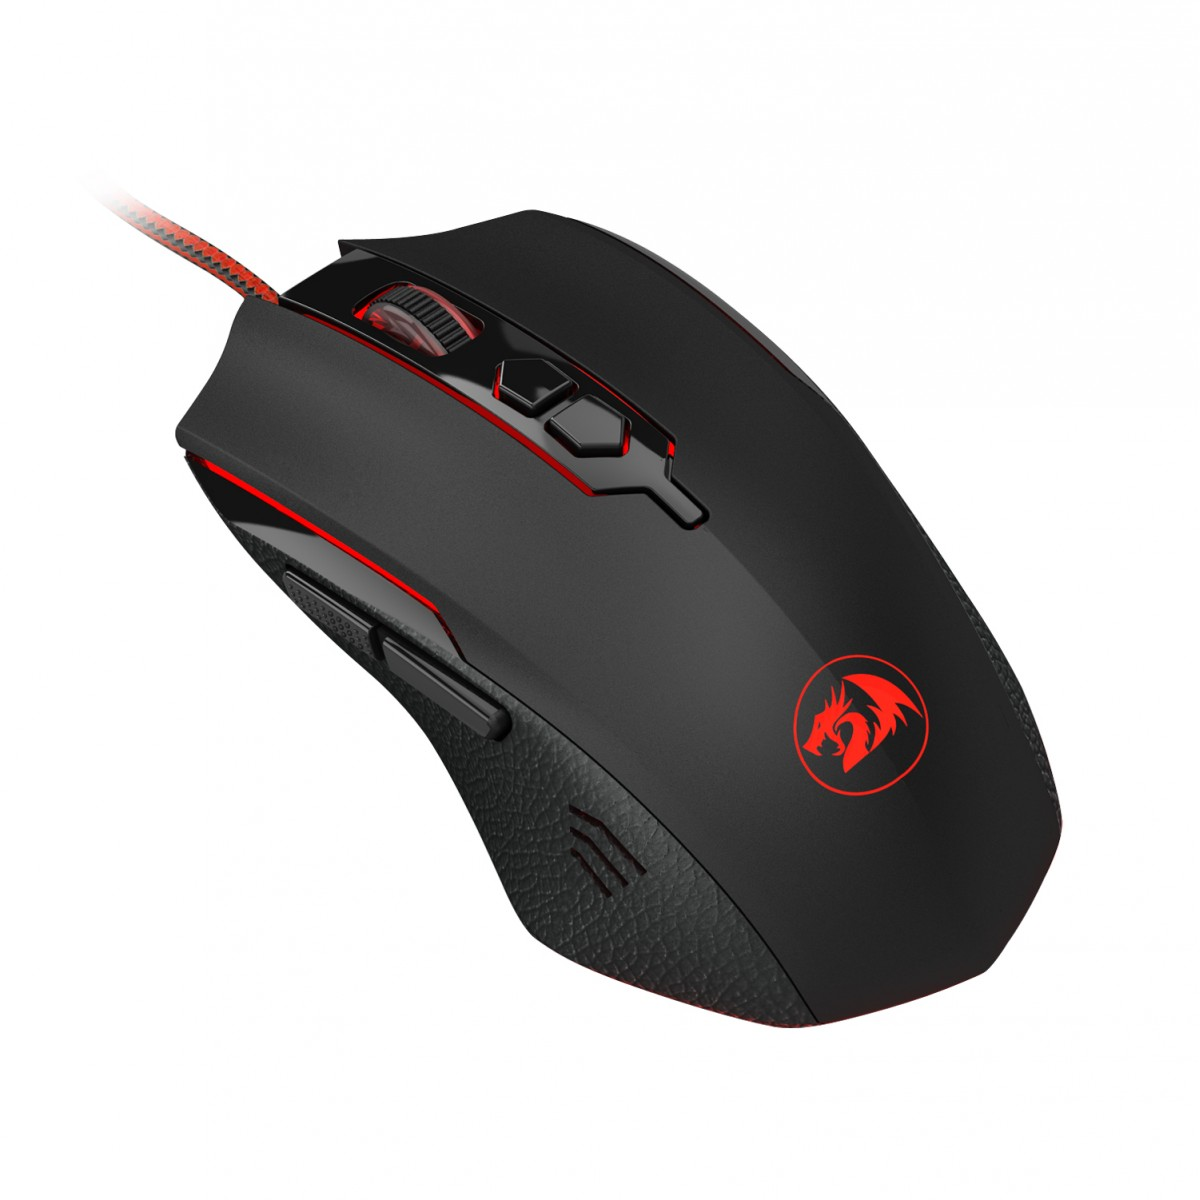 Mouse Gamer Redragon Inquisitor 2, 7200 DPI, 6 Botões Programáveis, Black - M716A